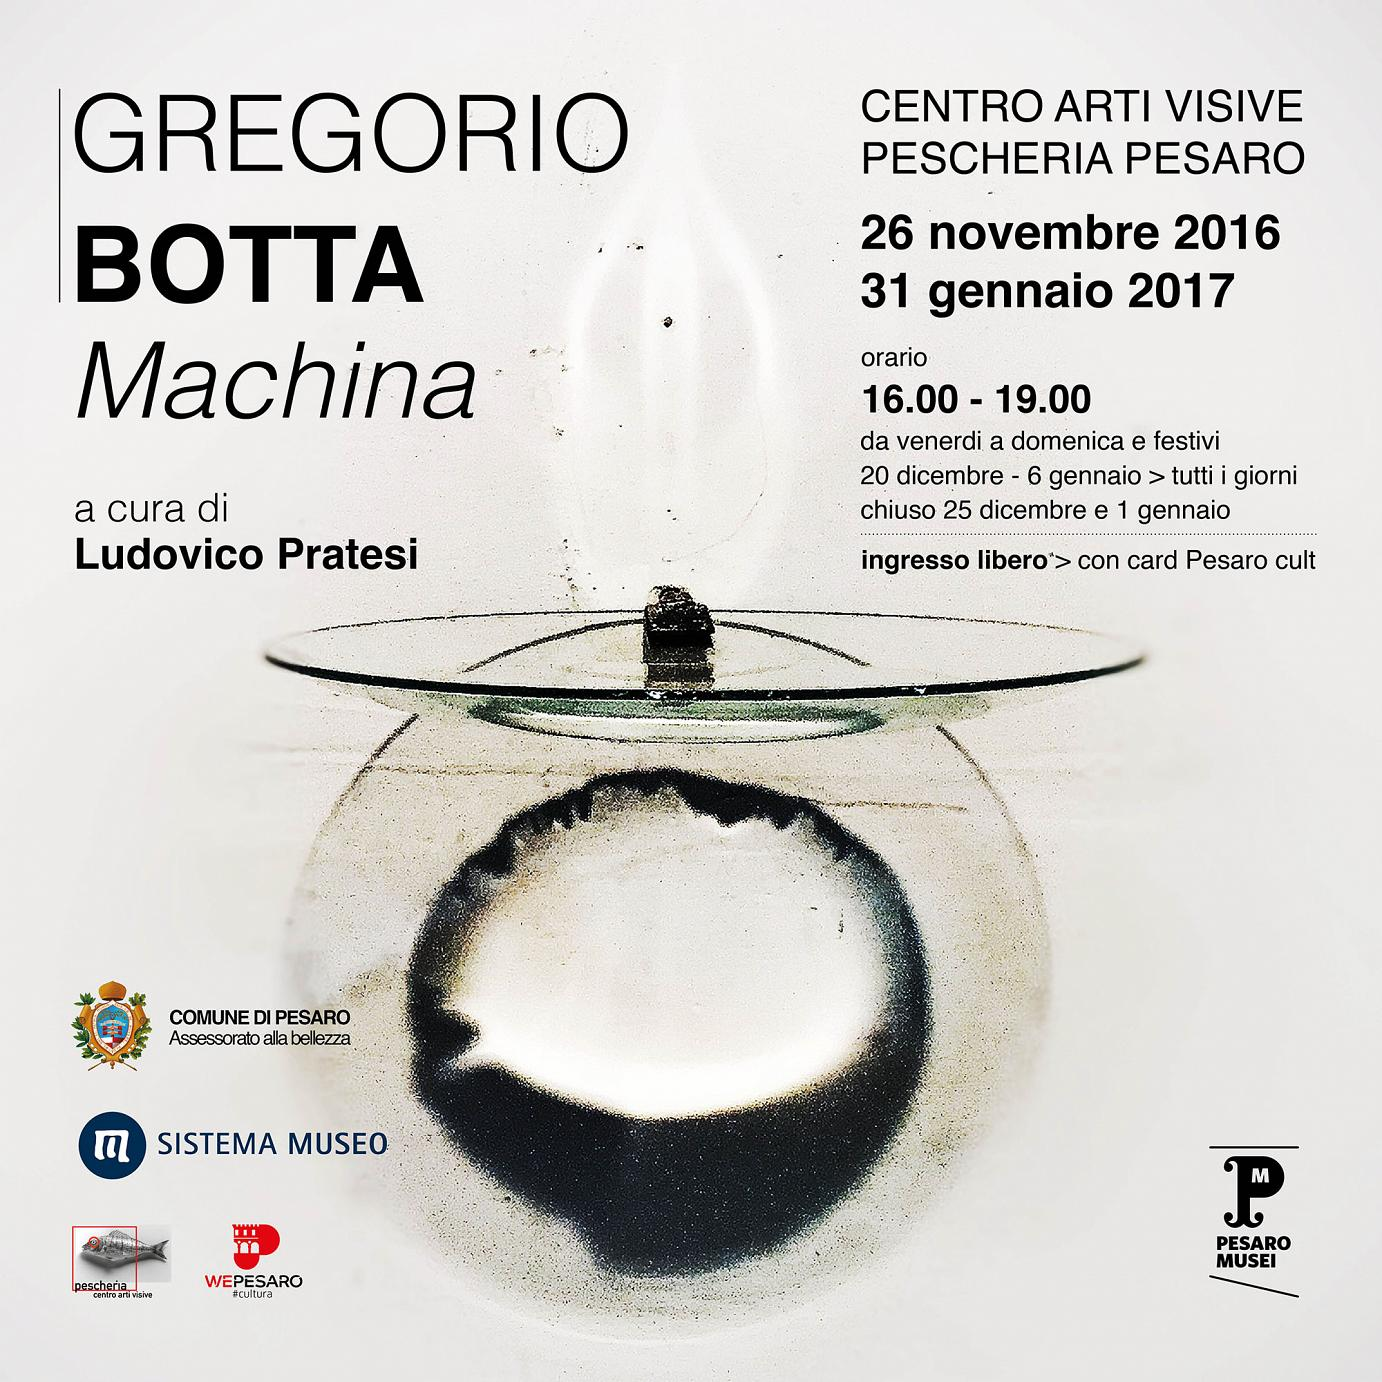 Gregorio Botta Machina2